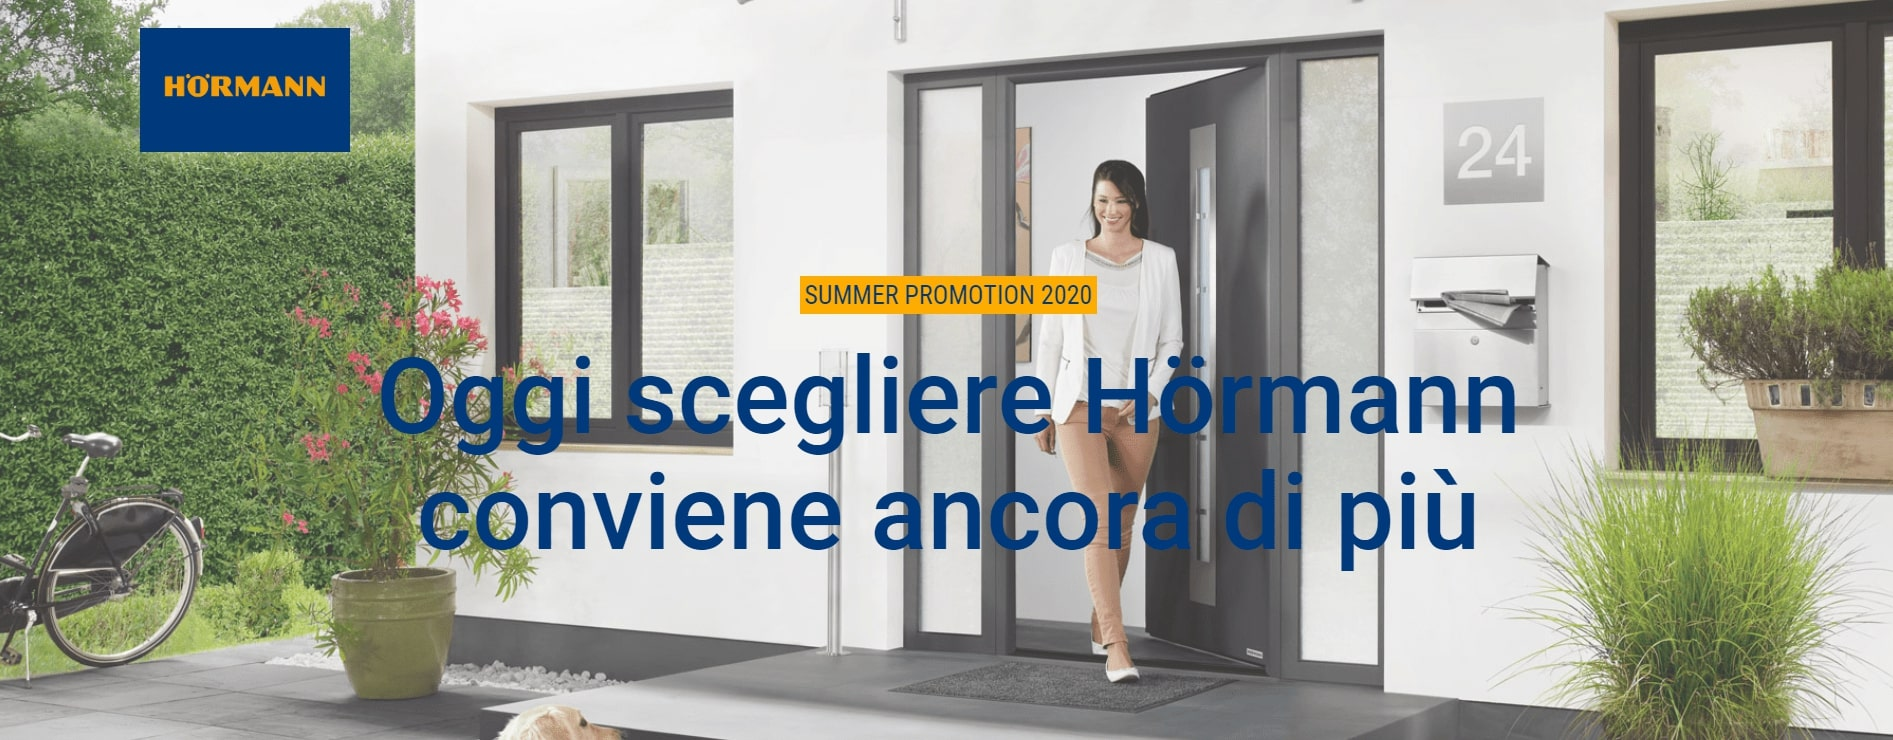 hormann summer promotion 2020 roma